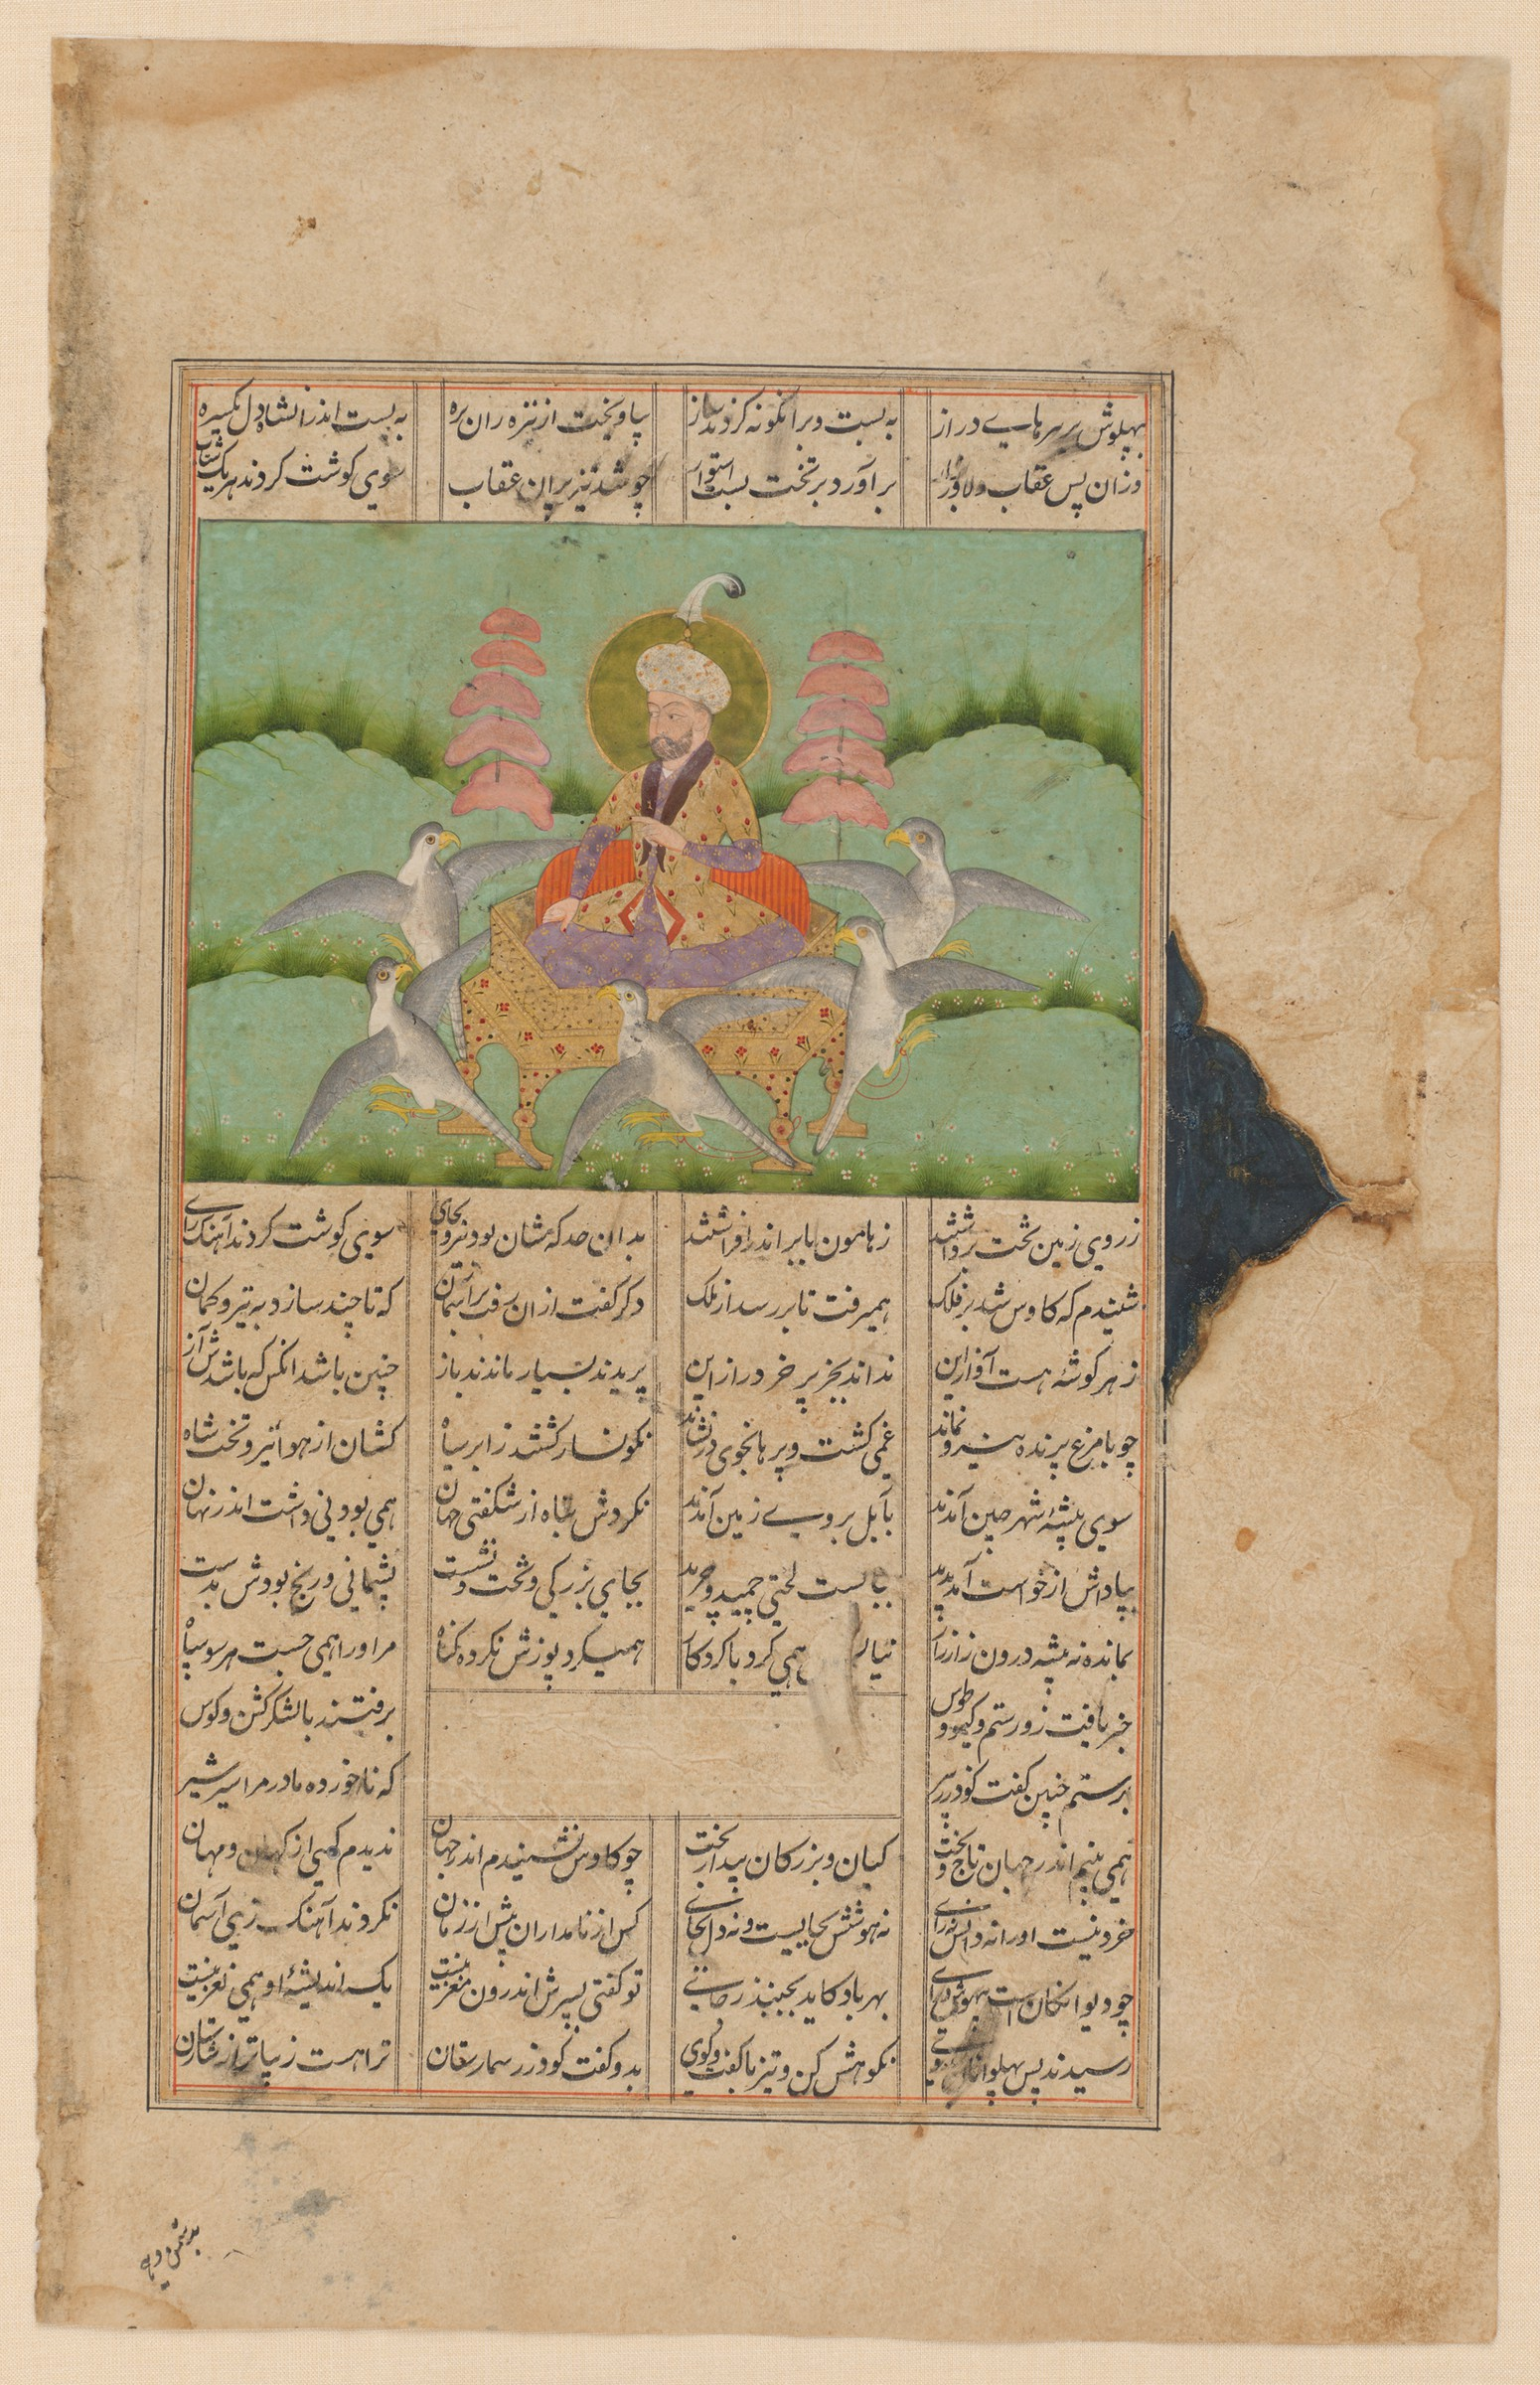 In a verdant landscape with flowers and distant trees, a luxuriously dressed man sits with crossed legs on a golden throne. His head, graced by a turban with a tall feather, is surrounded by a halo. The throne is tied to five eagles' talons. The fluttering birds eye two skewers of meat that are fastened to the throne.